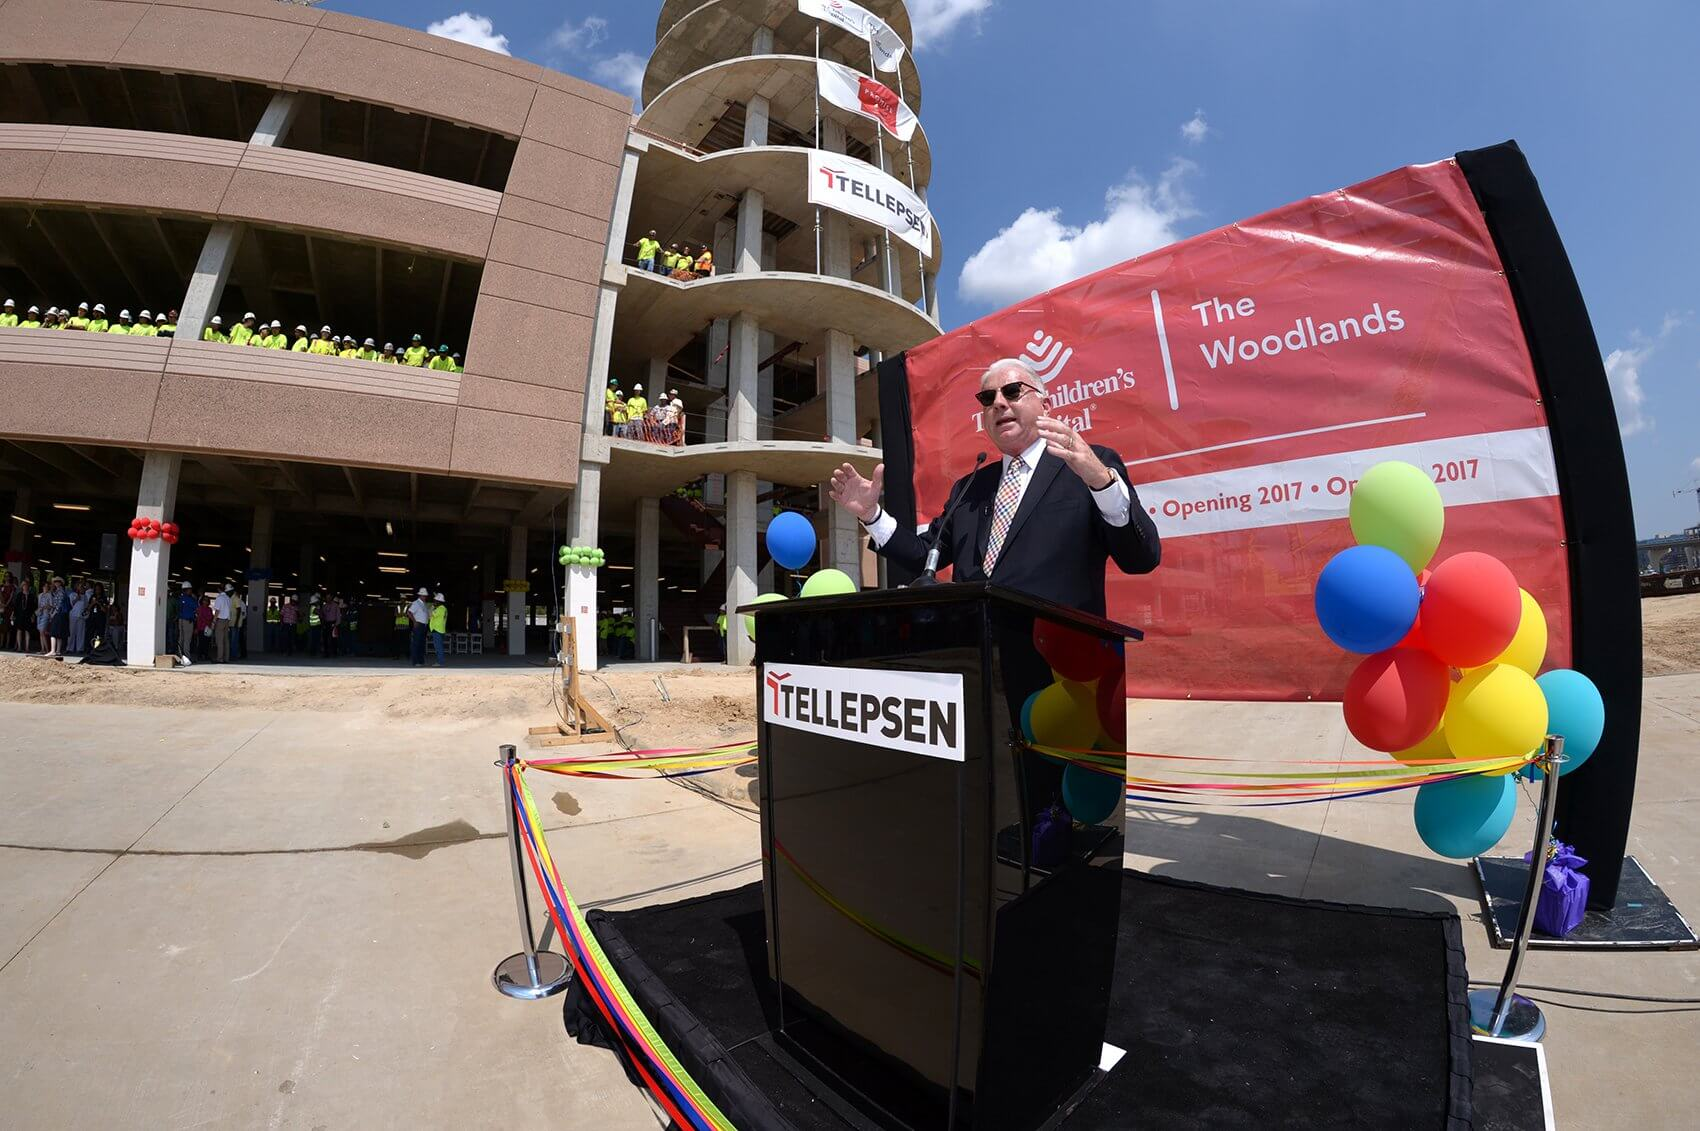 Mark A. Wallace, president and CEO of Texas Children's Hospital, welcomes guests to the important construction milestone ceremony. (Credit: Paul Vincent Kuntz/Texas Children's Hospital)